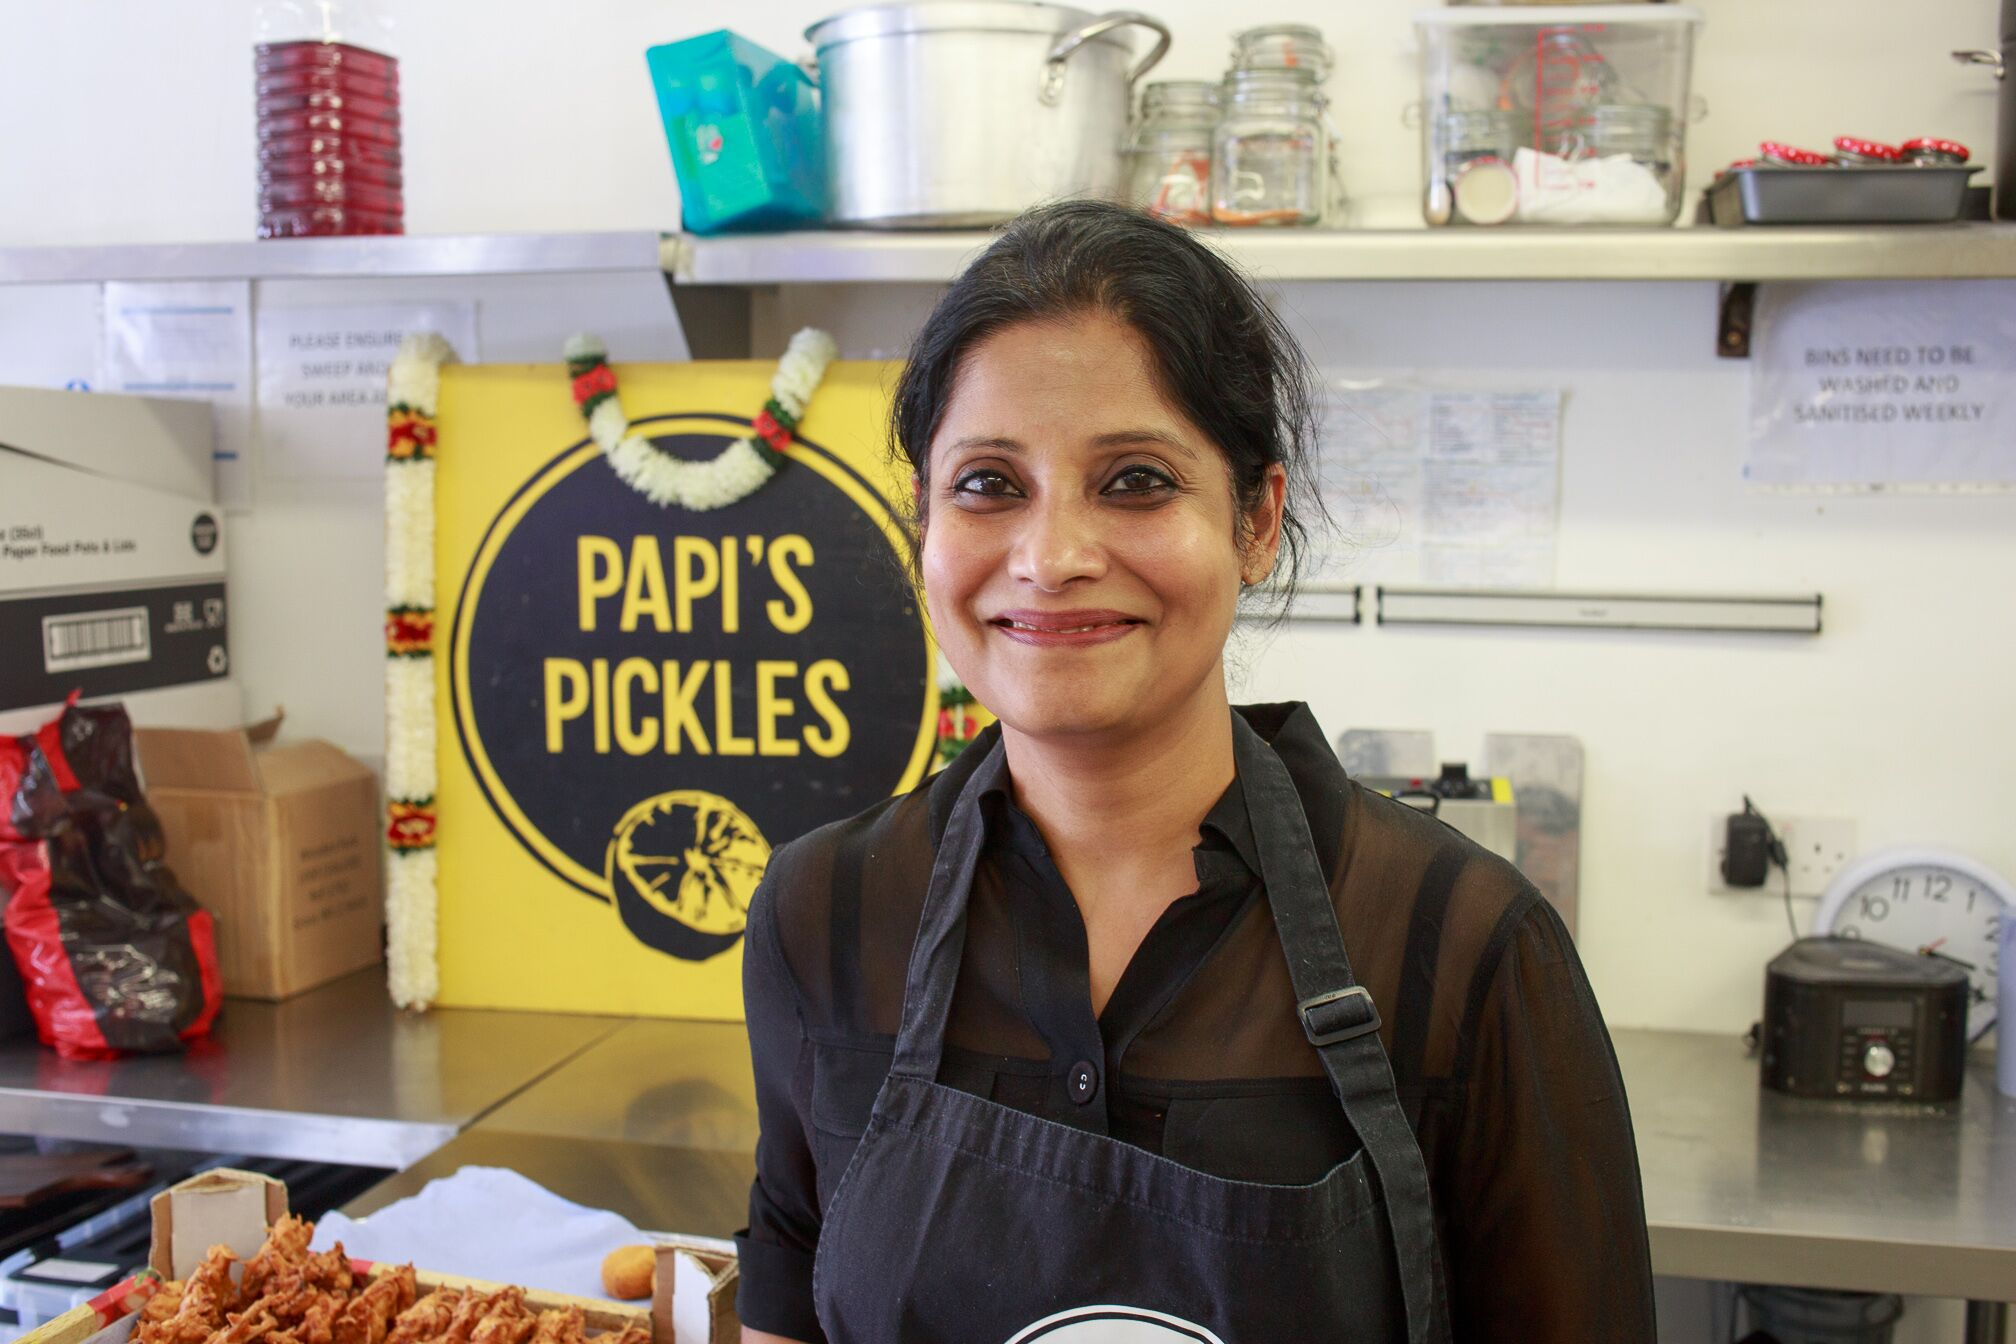 social entrepreneur Award winners Papis Pickles